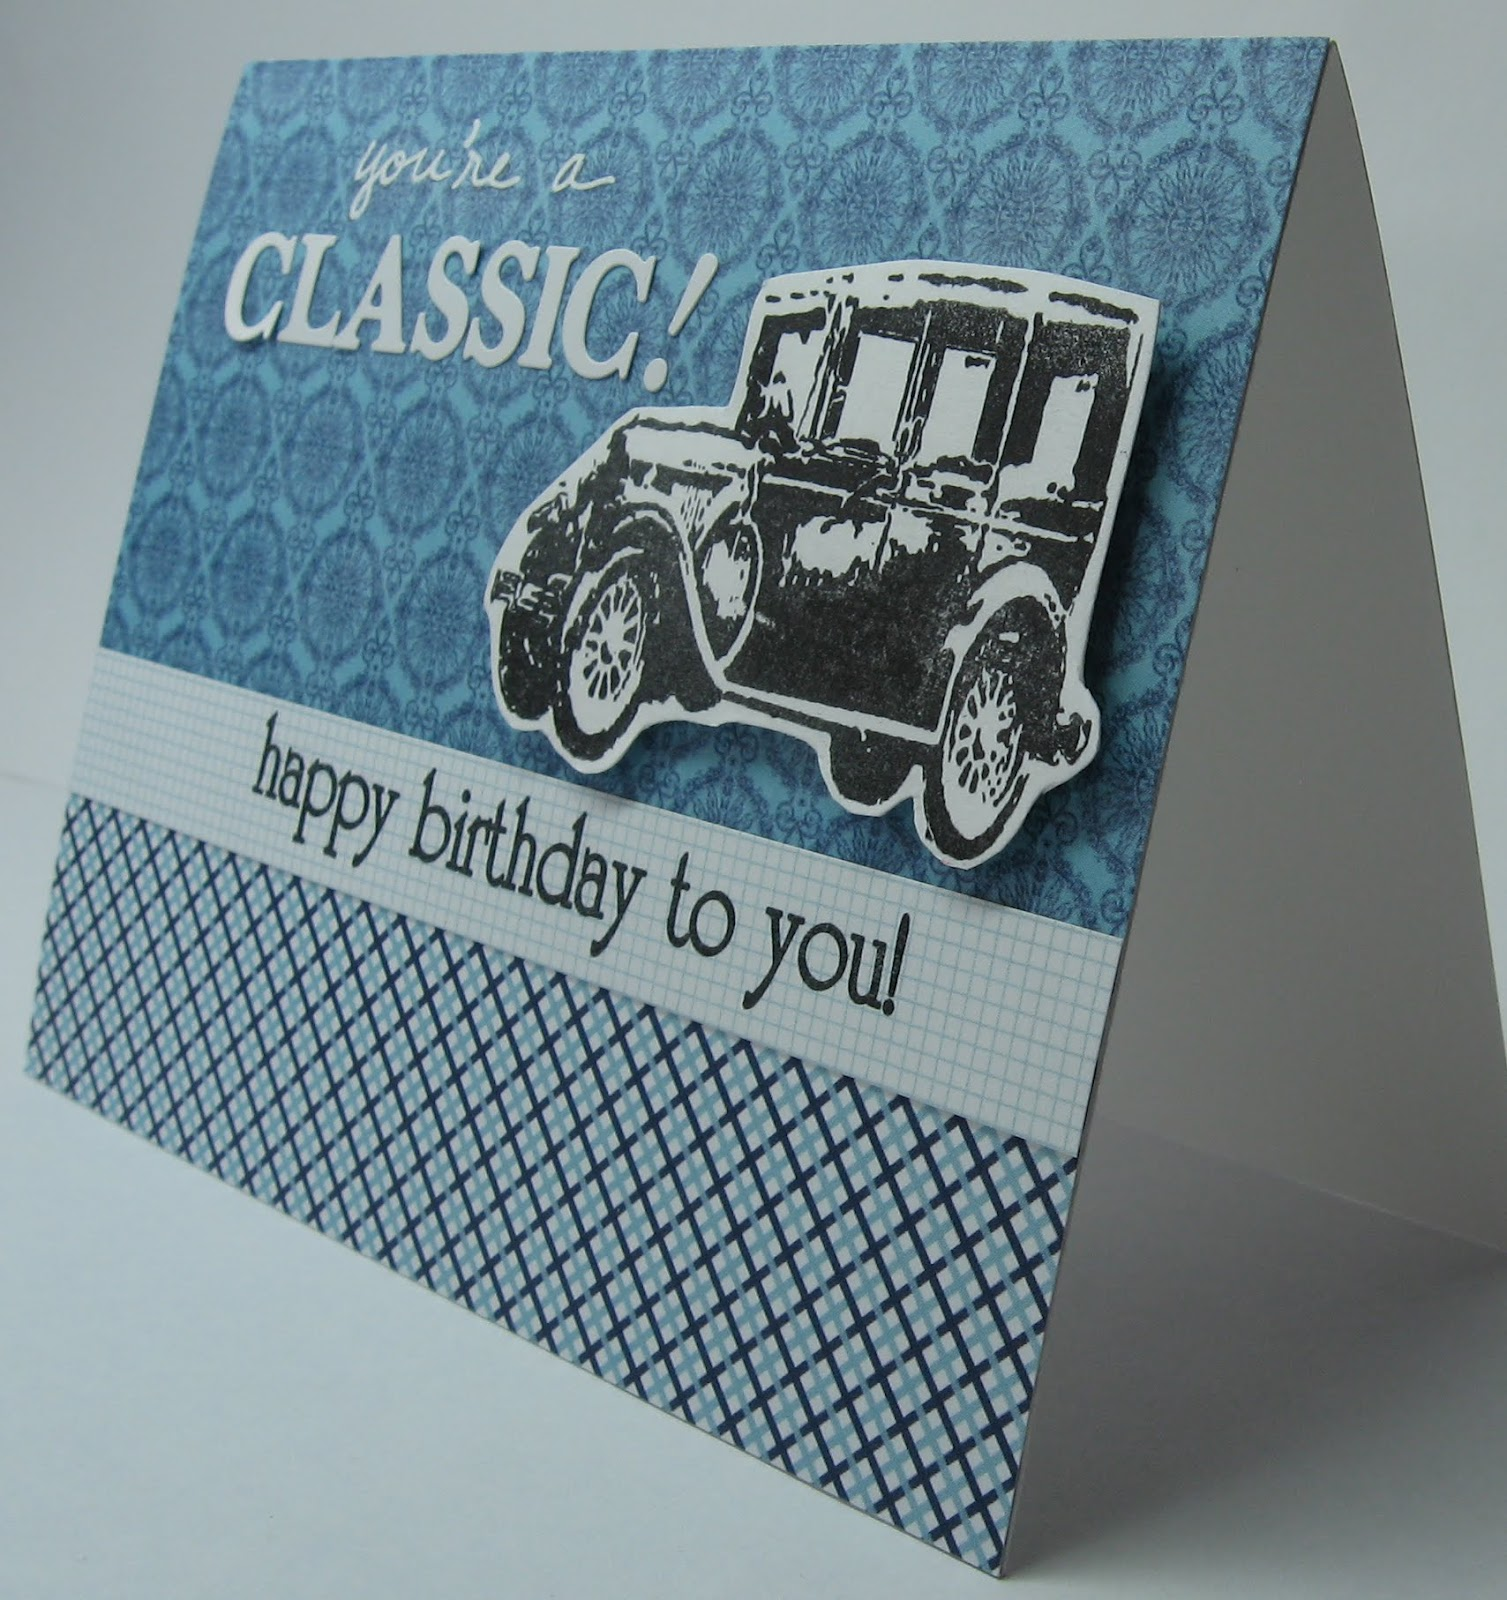 The Good The Bad The Ugly Crafts A classic masculine birthday card – Ugly Birthday Card